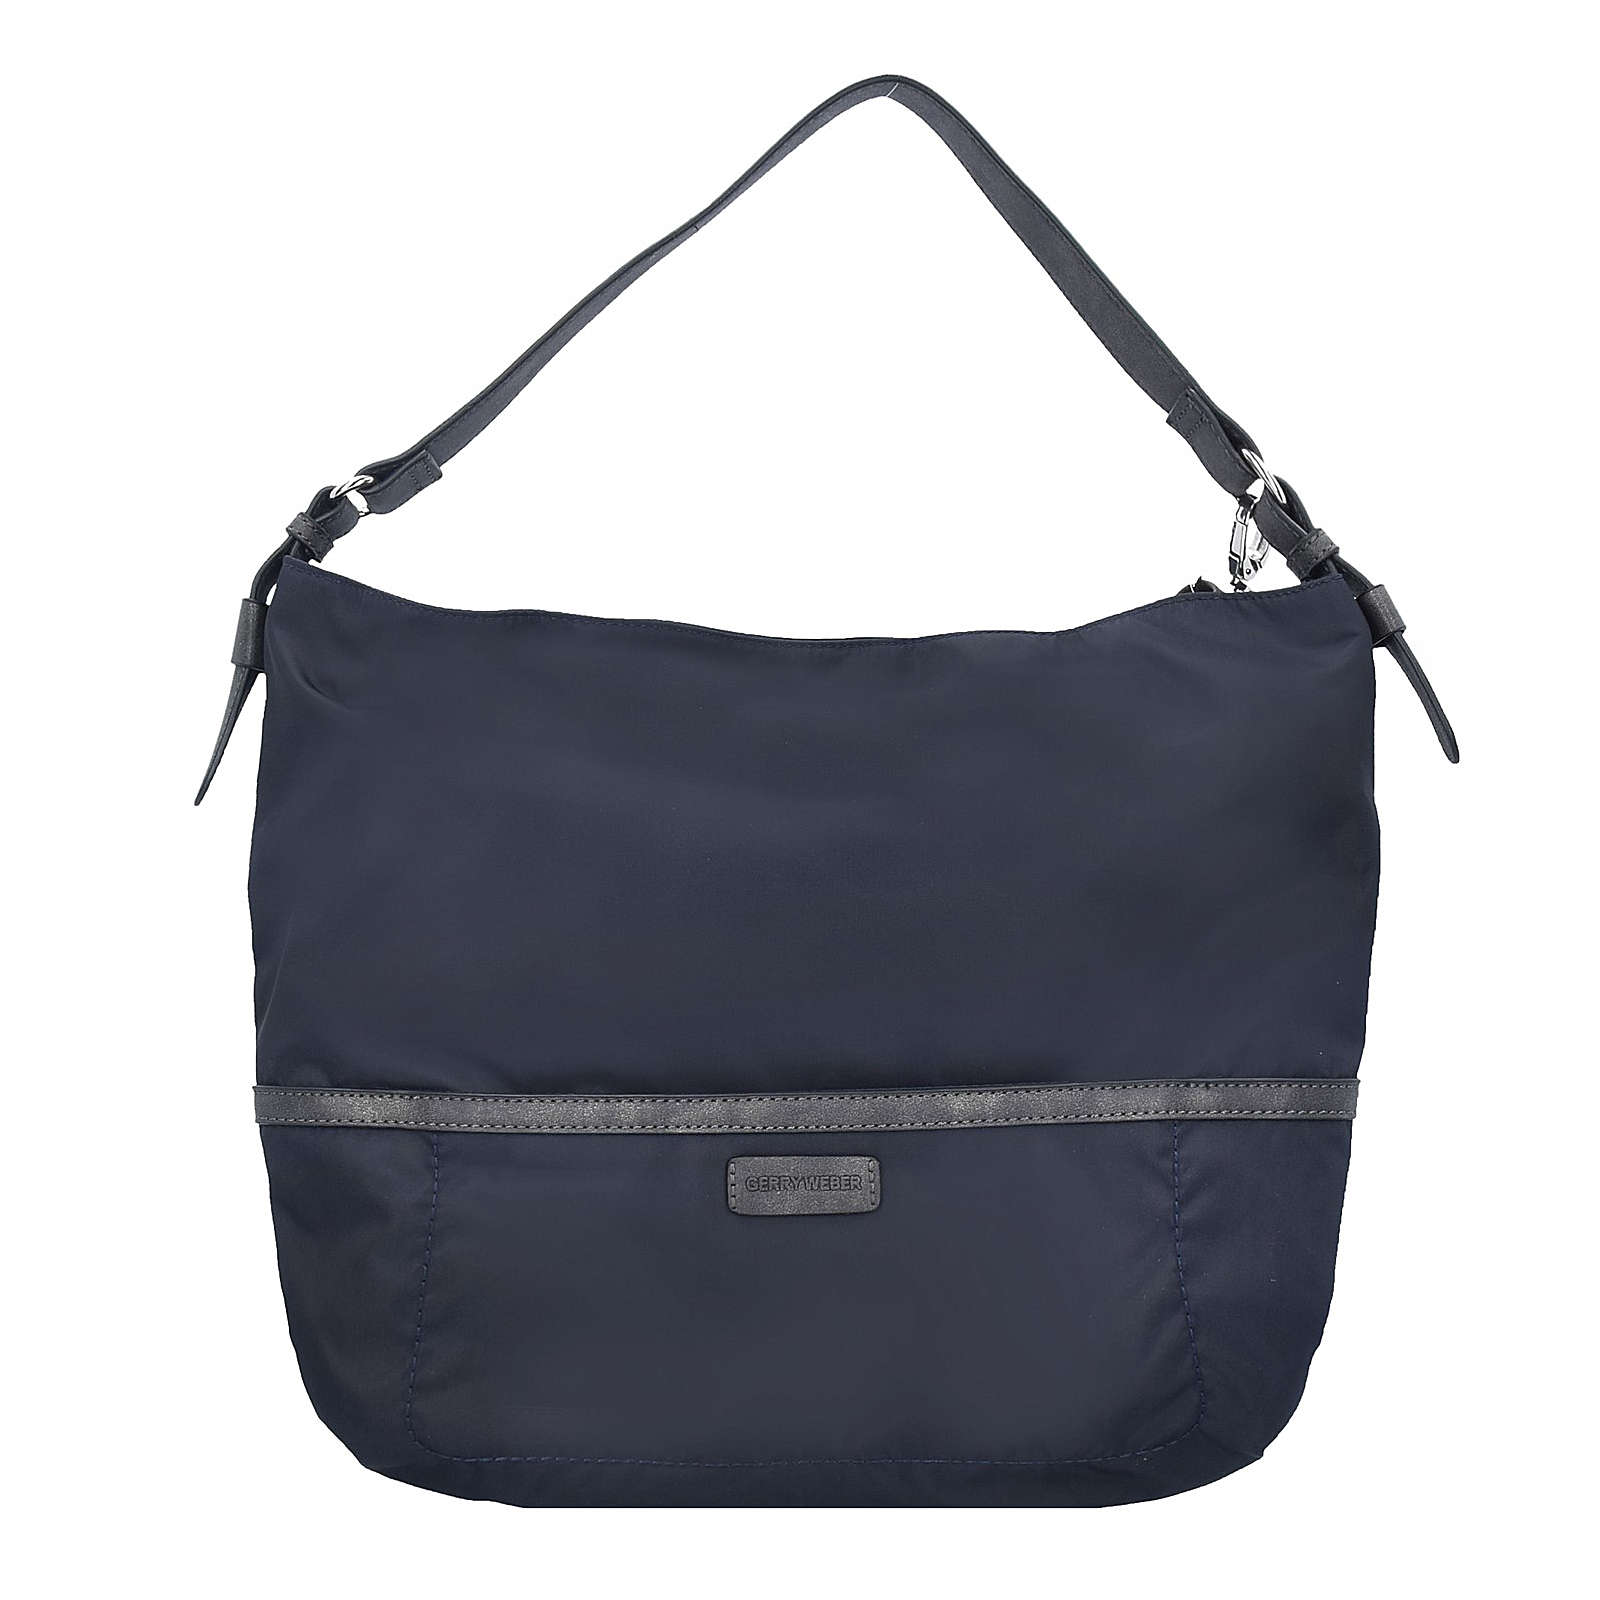 Bright Side Schultertasche 41 cm Gerry Weber dark blue - broschei